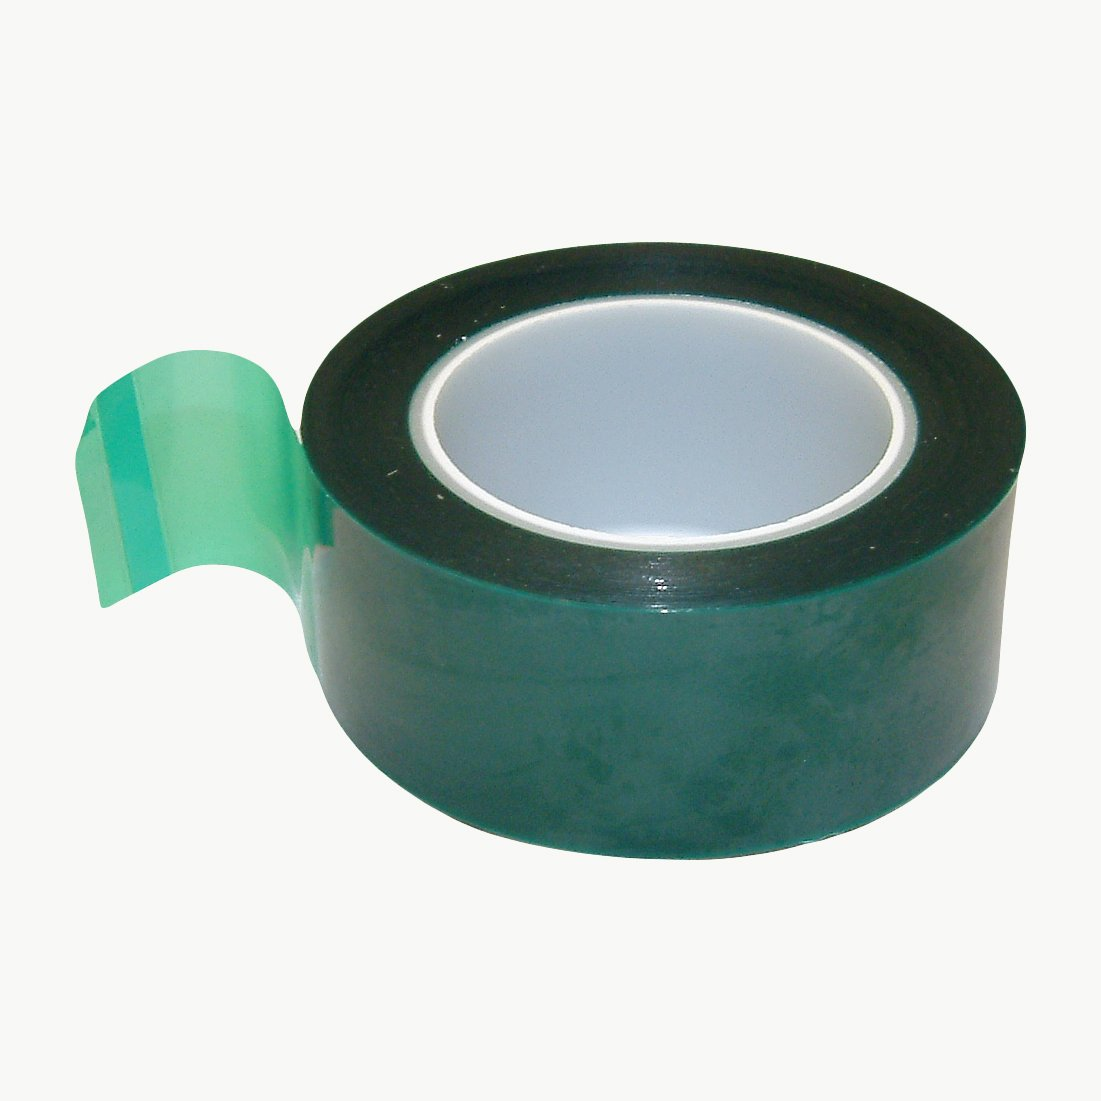 J.V. Converting PPT-36G/GRN272 JVCC PPT-36G Silicone Splicing Tape: 2'' x 72 yd, Green